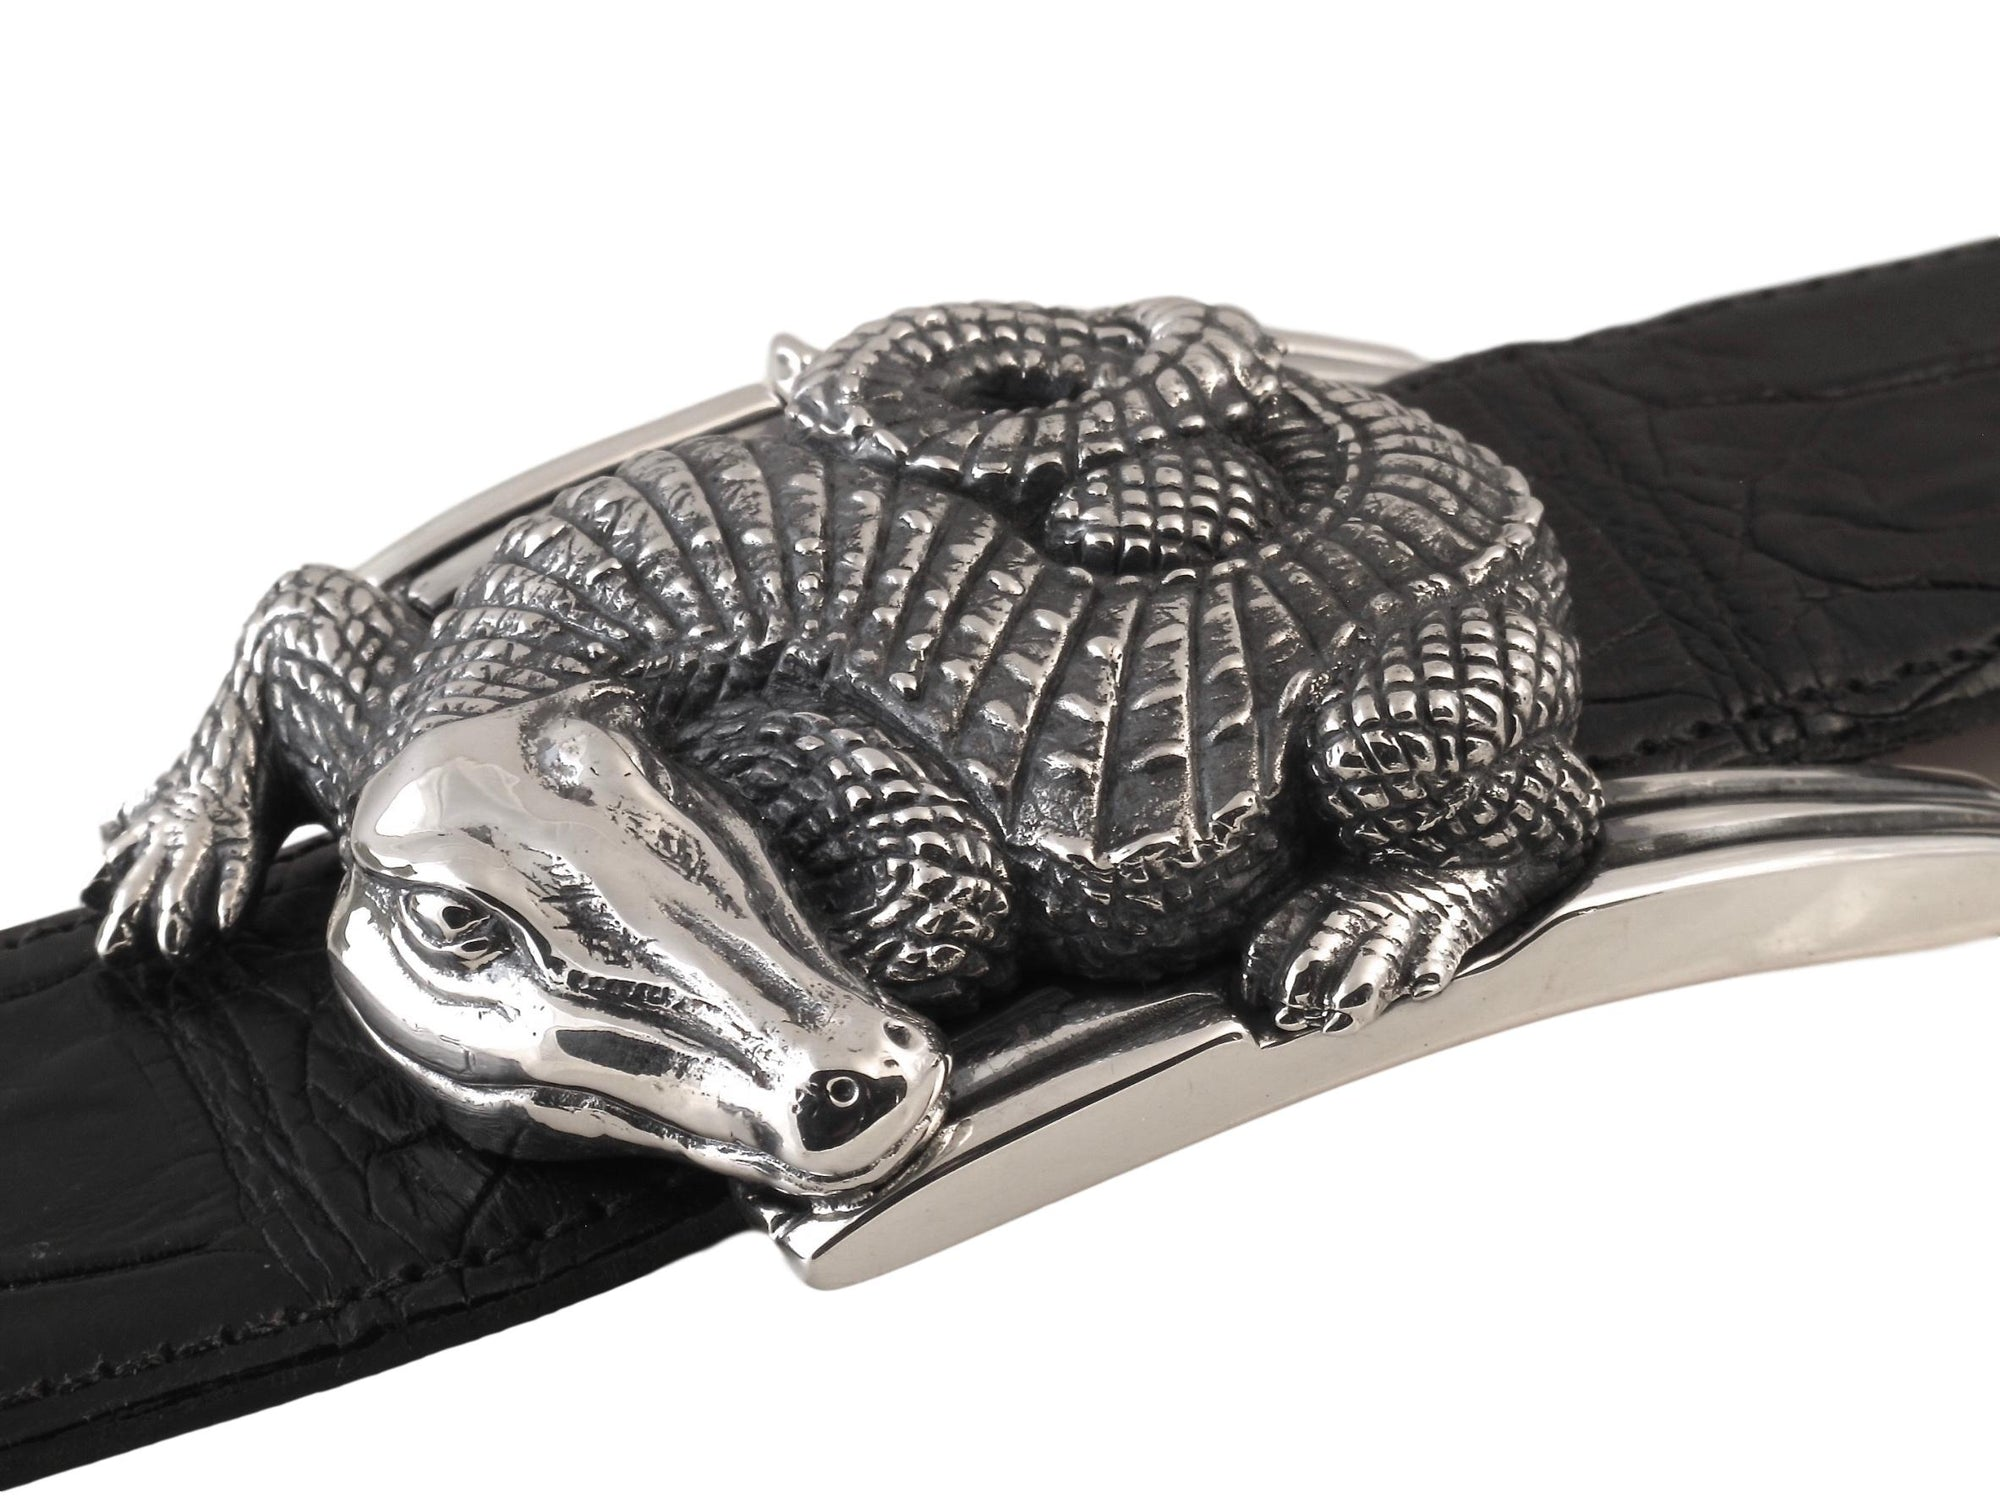 Front view of the Sterling Curved Alligator buckle showig its curled body resting on the polished buckle frame.